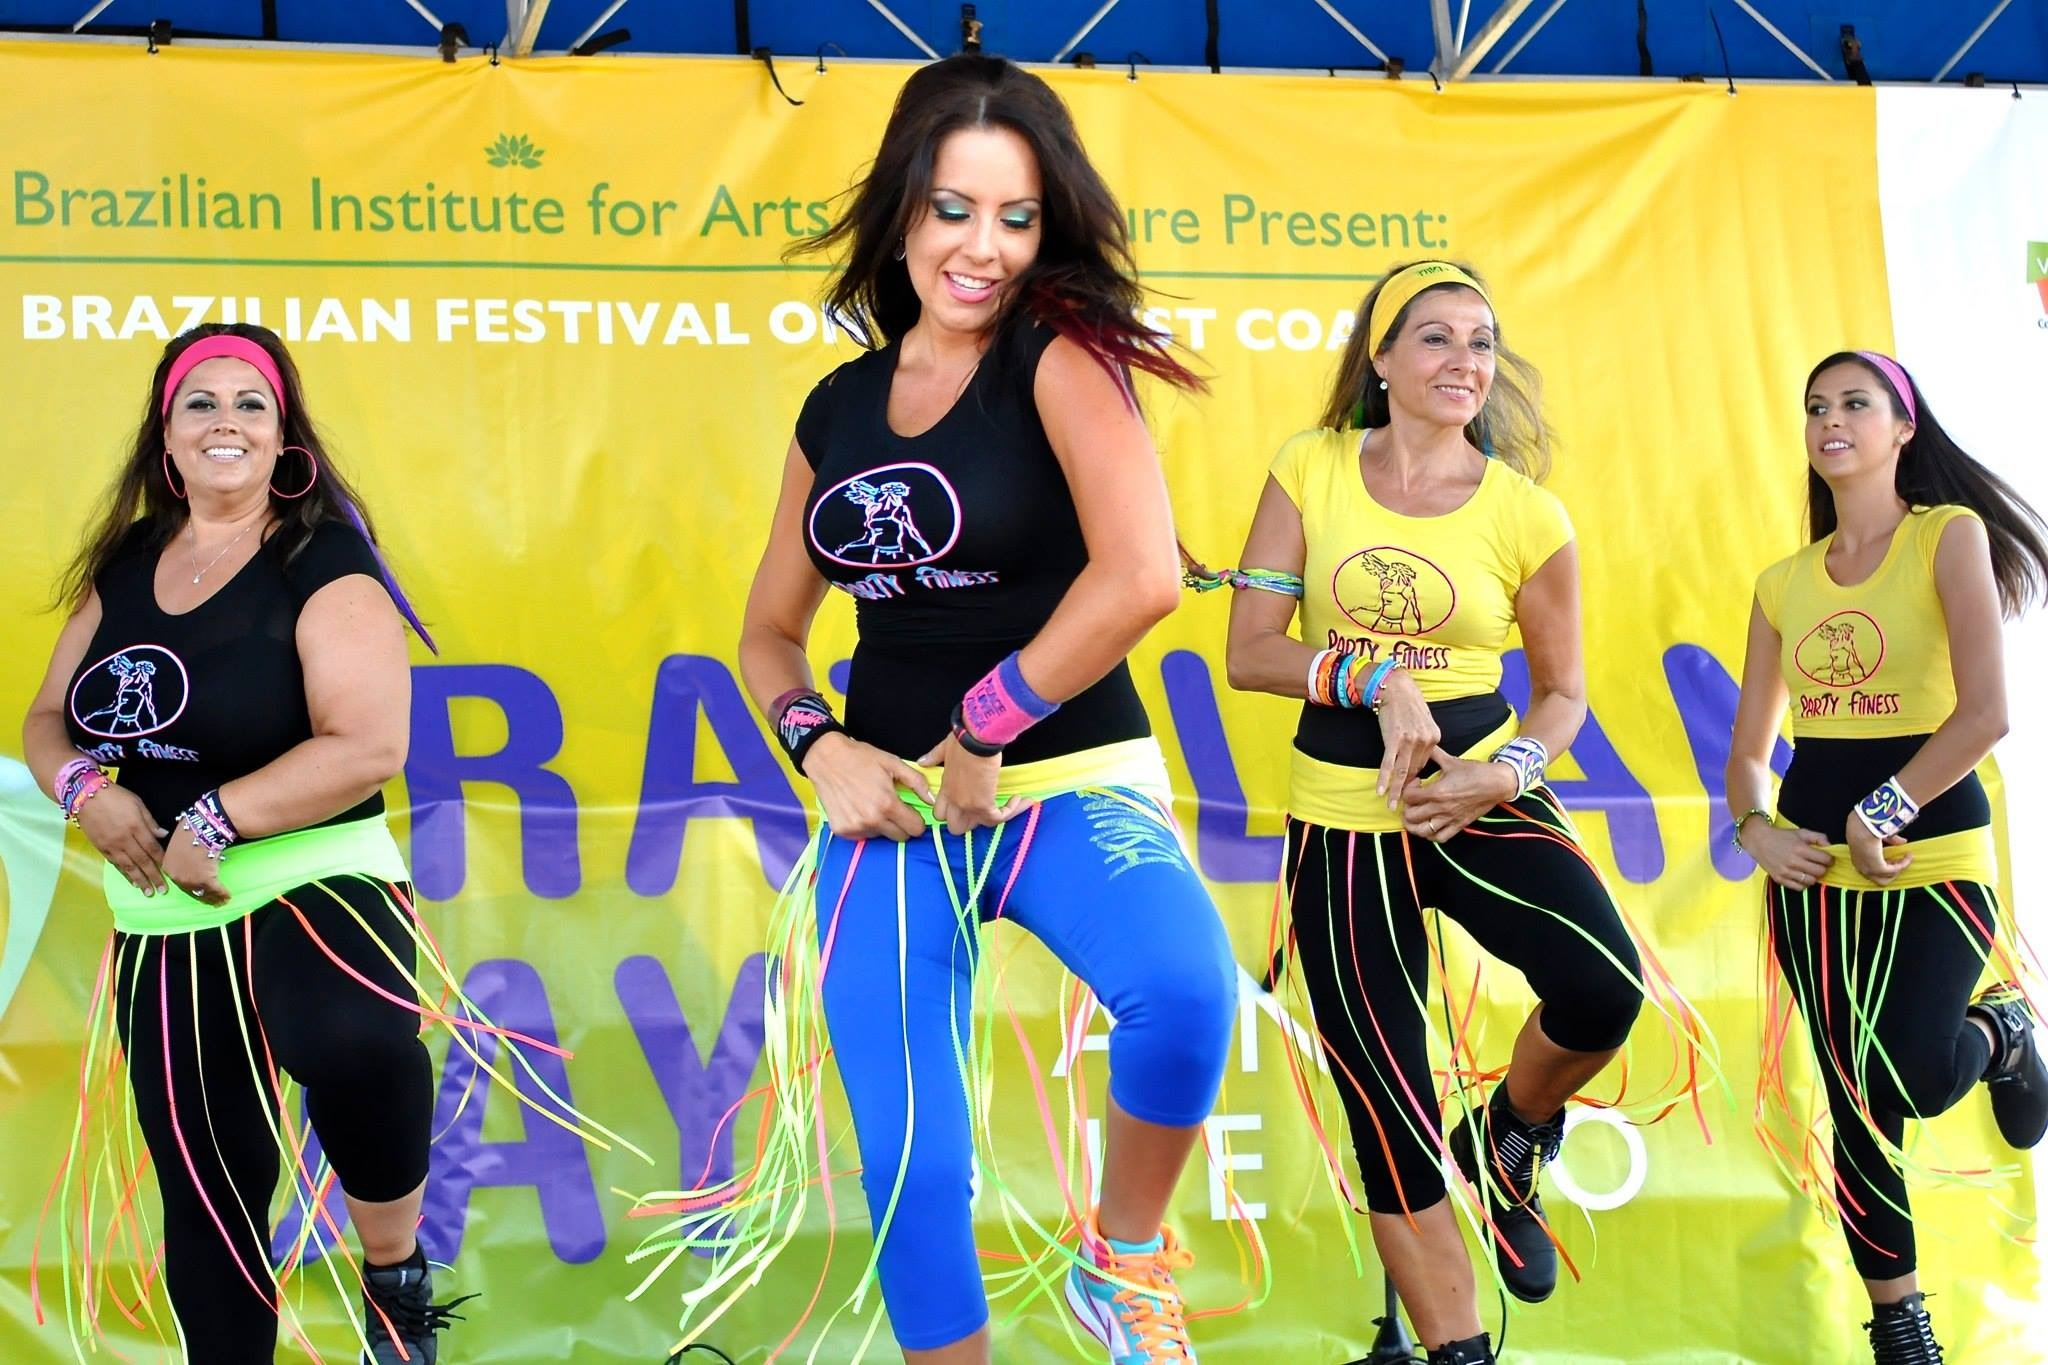 Party Fitness at the Brazilian Festival